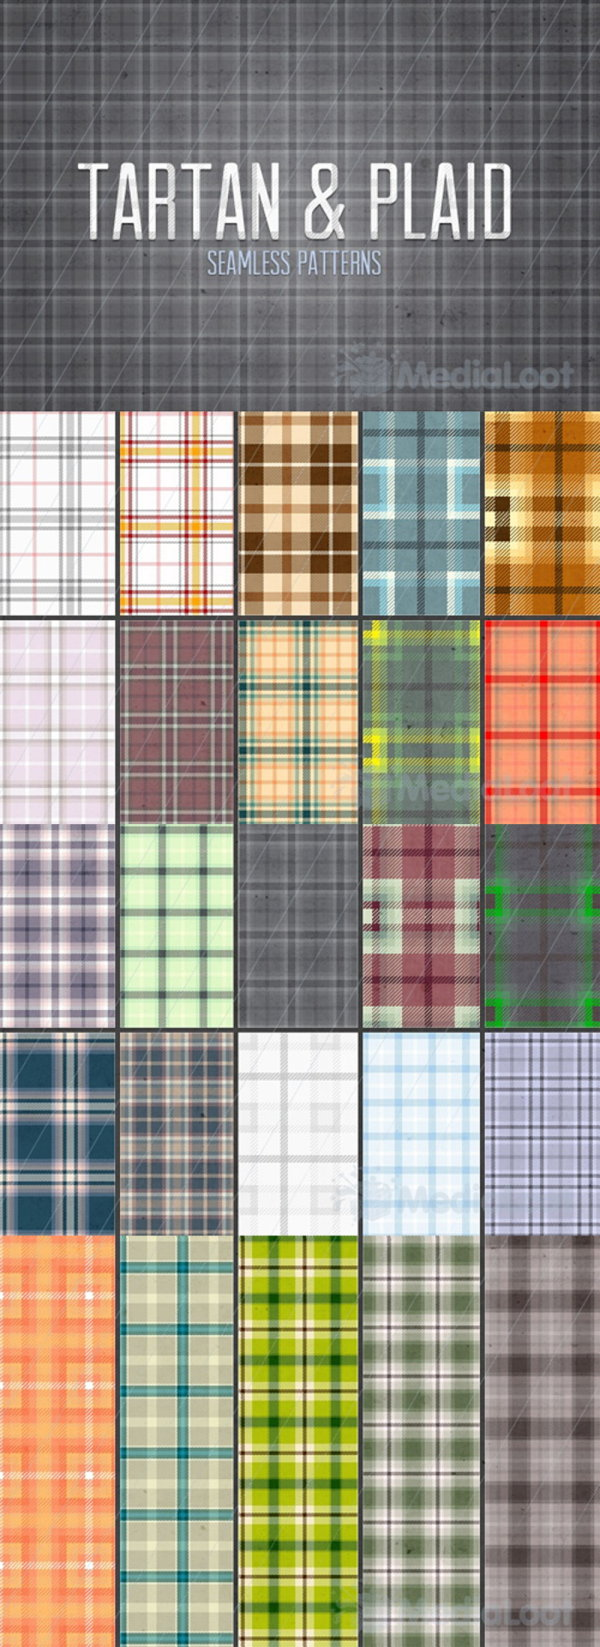 The Photoshop grid pattern set including PNG images